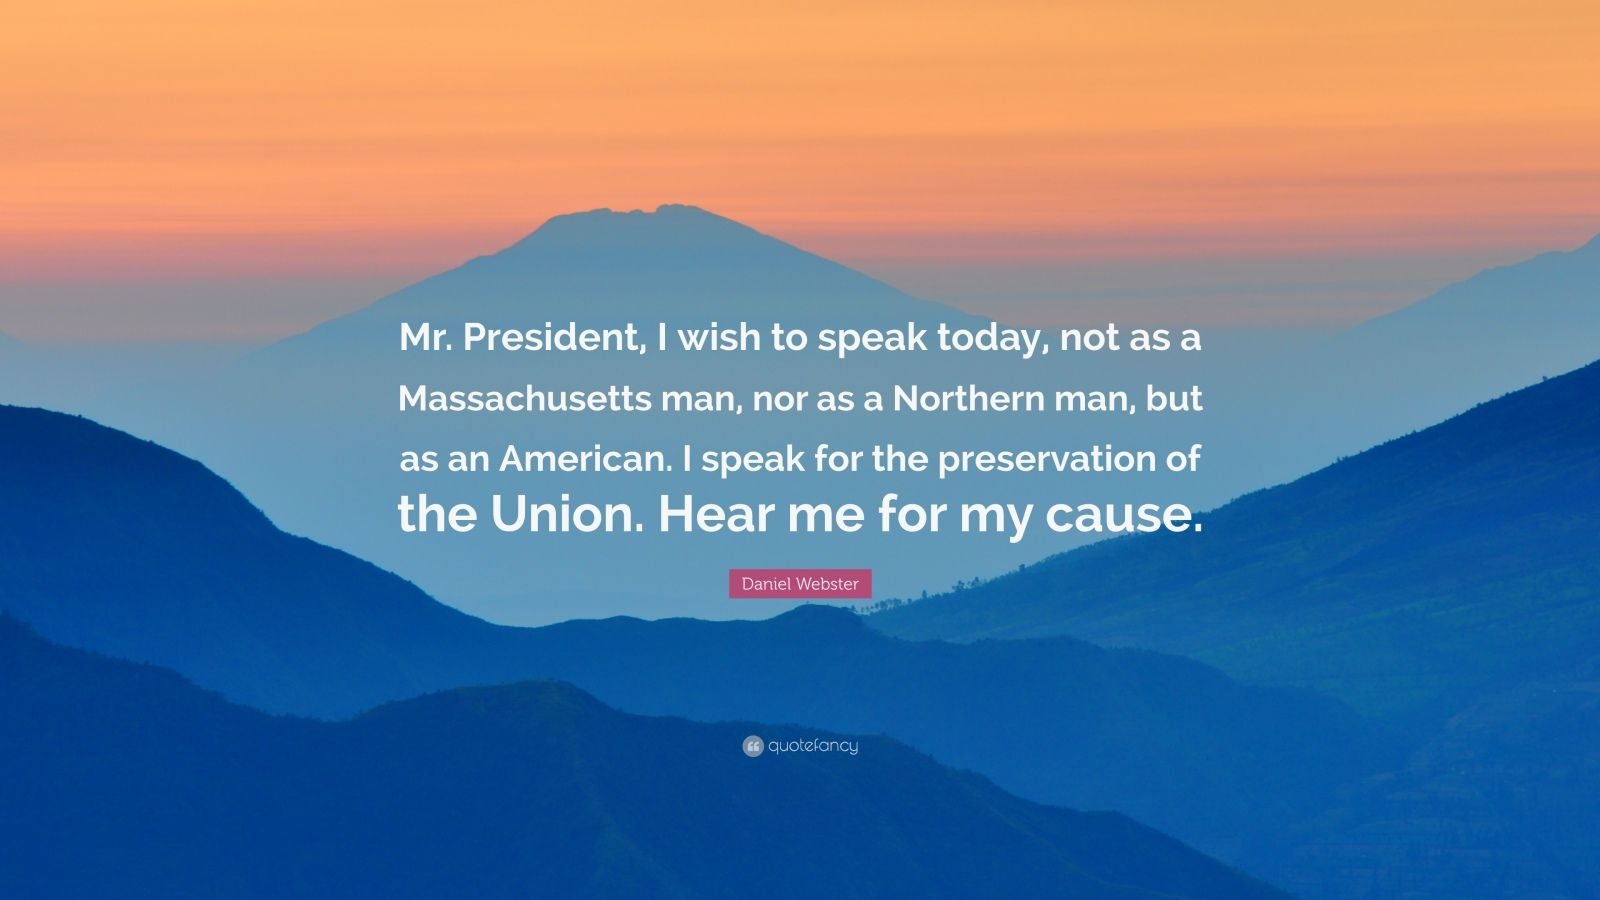 """Daniel Webster Quote: """"Mr. President, I wish to speak today, not as a Massachusetts man, nor as a Northern man, but as an American. I speak for the preservation of the Union. Hear me for my cause."""""""